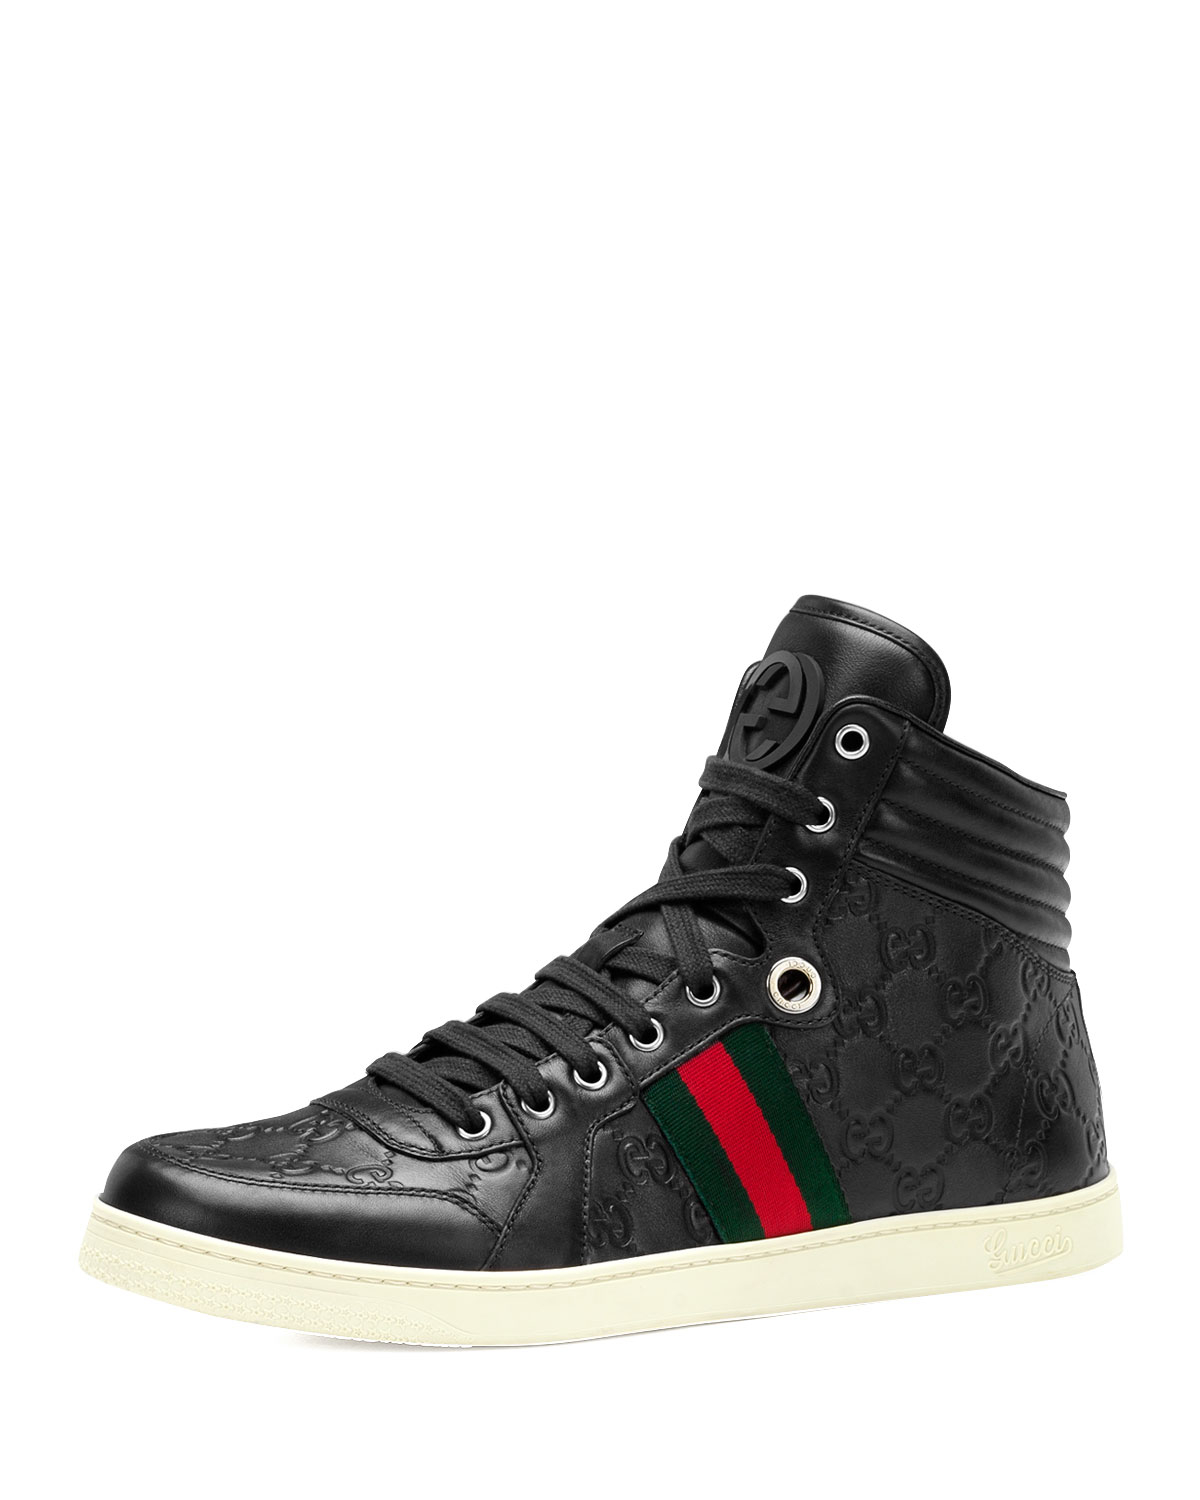 Lyst Gucci Coda Ssima Leather High Top Sneaker In Black